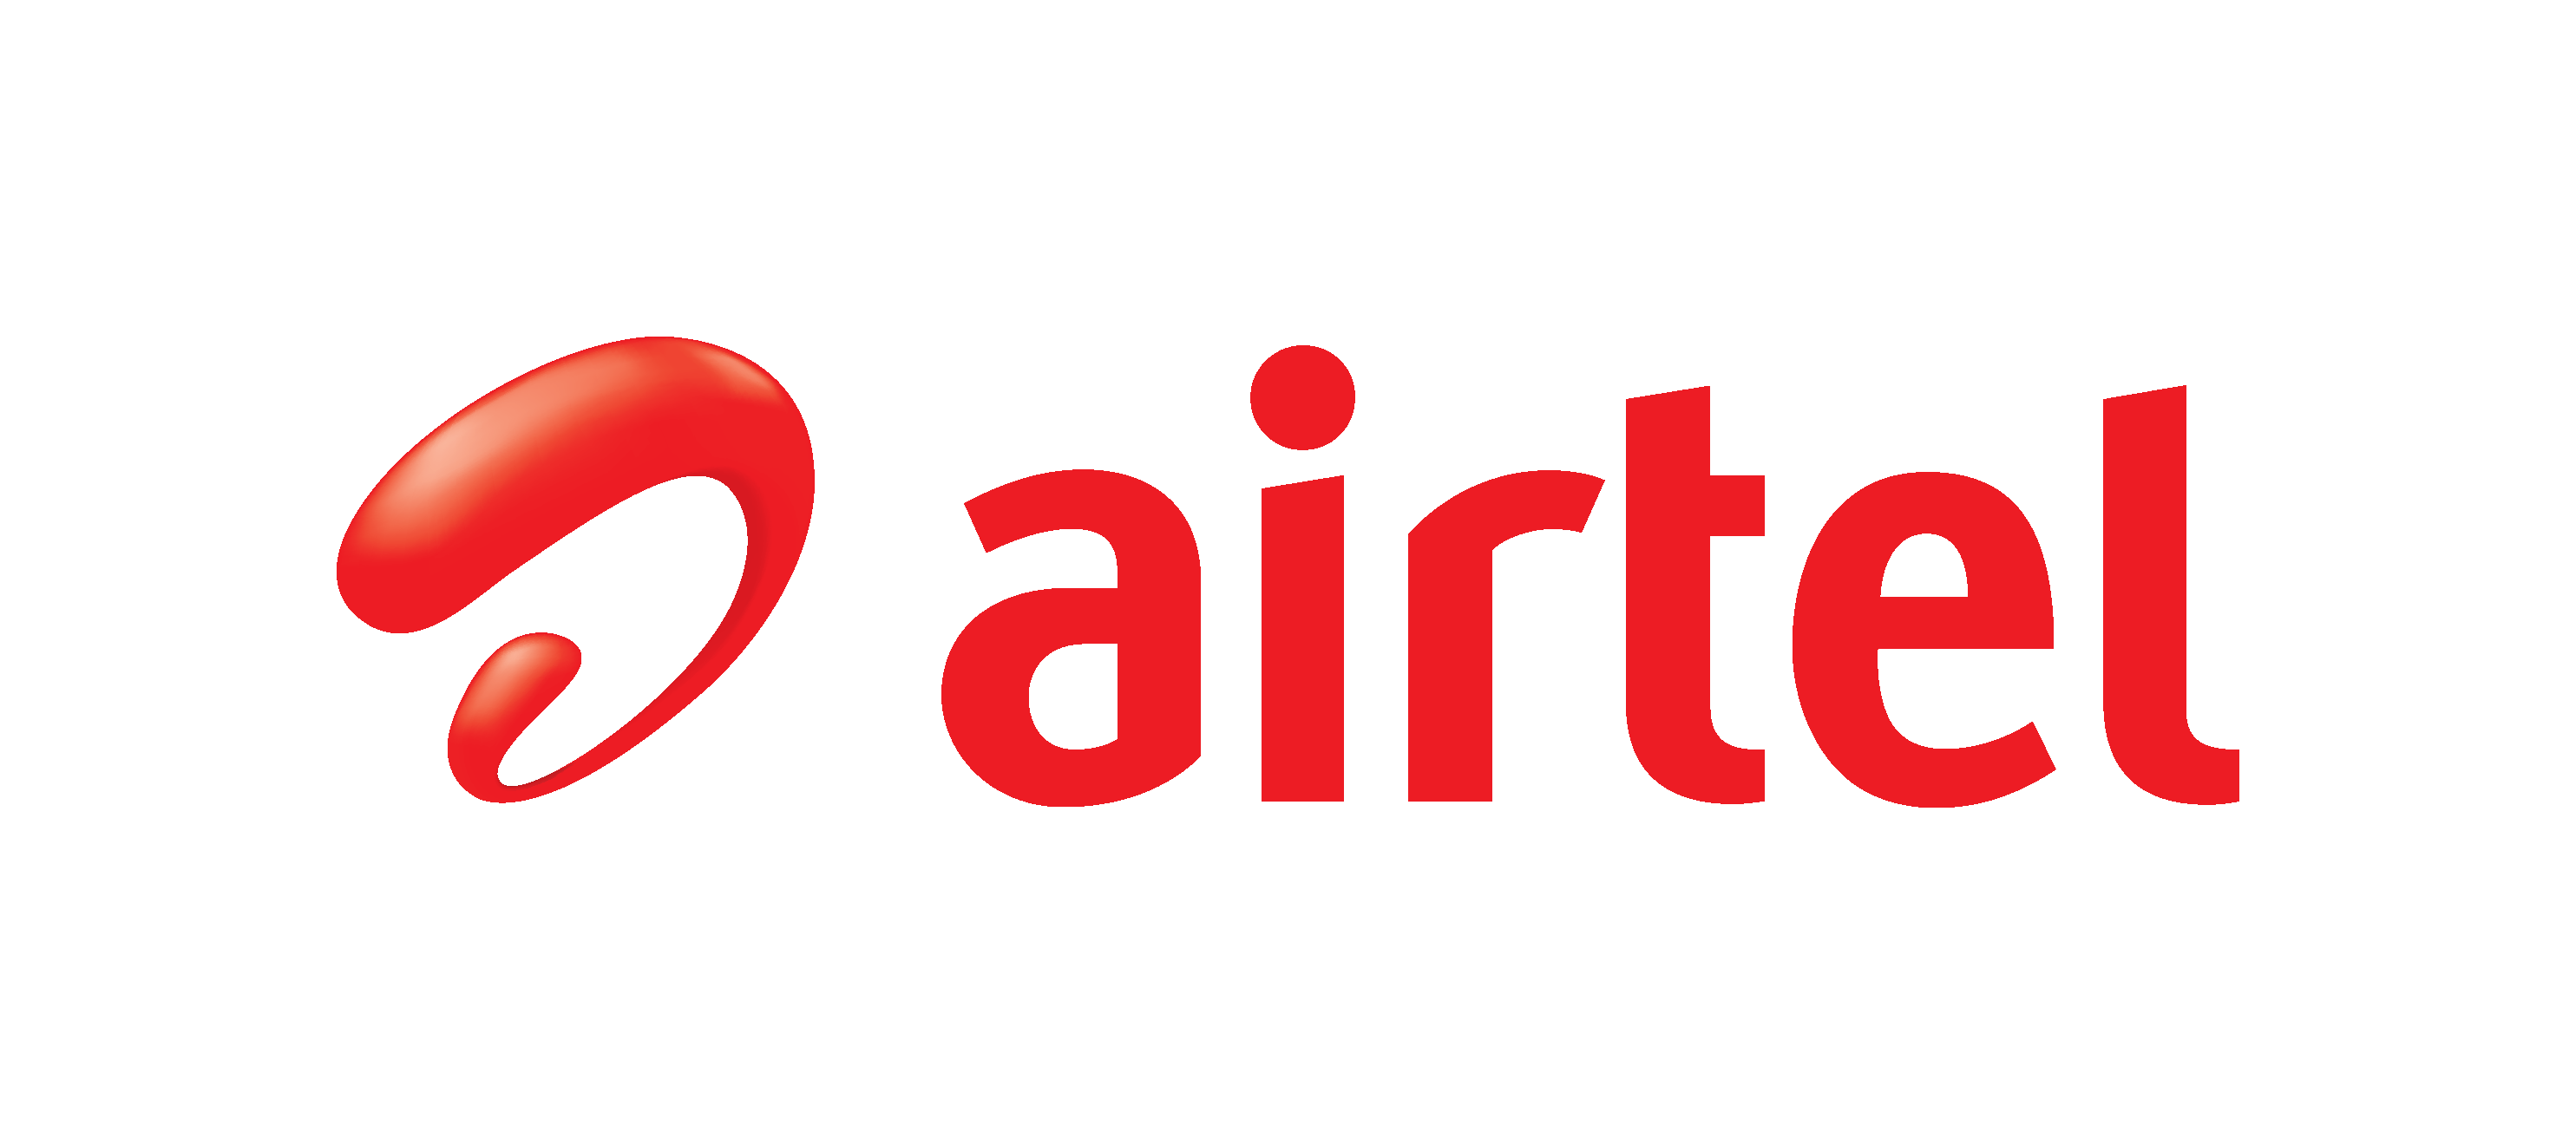 Airtel data plan, activation codes and prices of the data plans